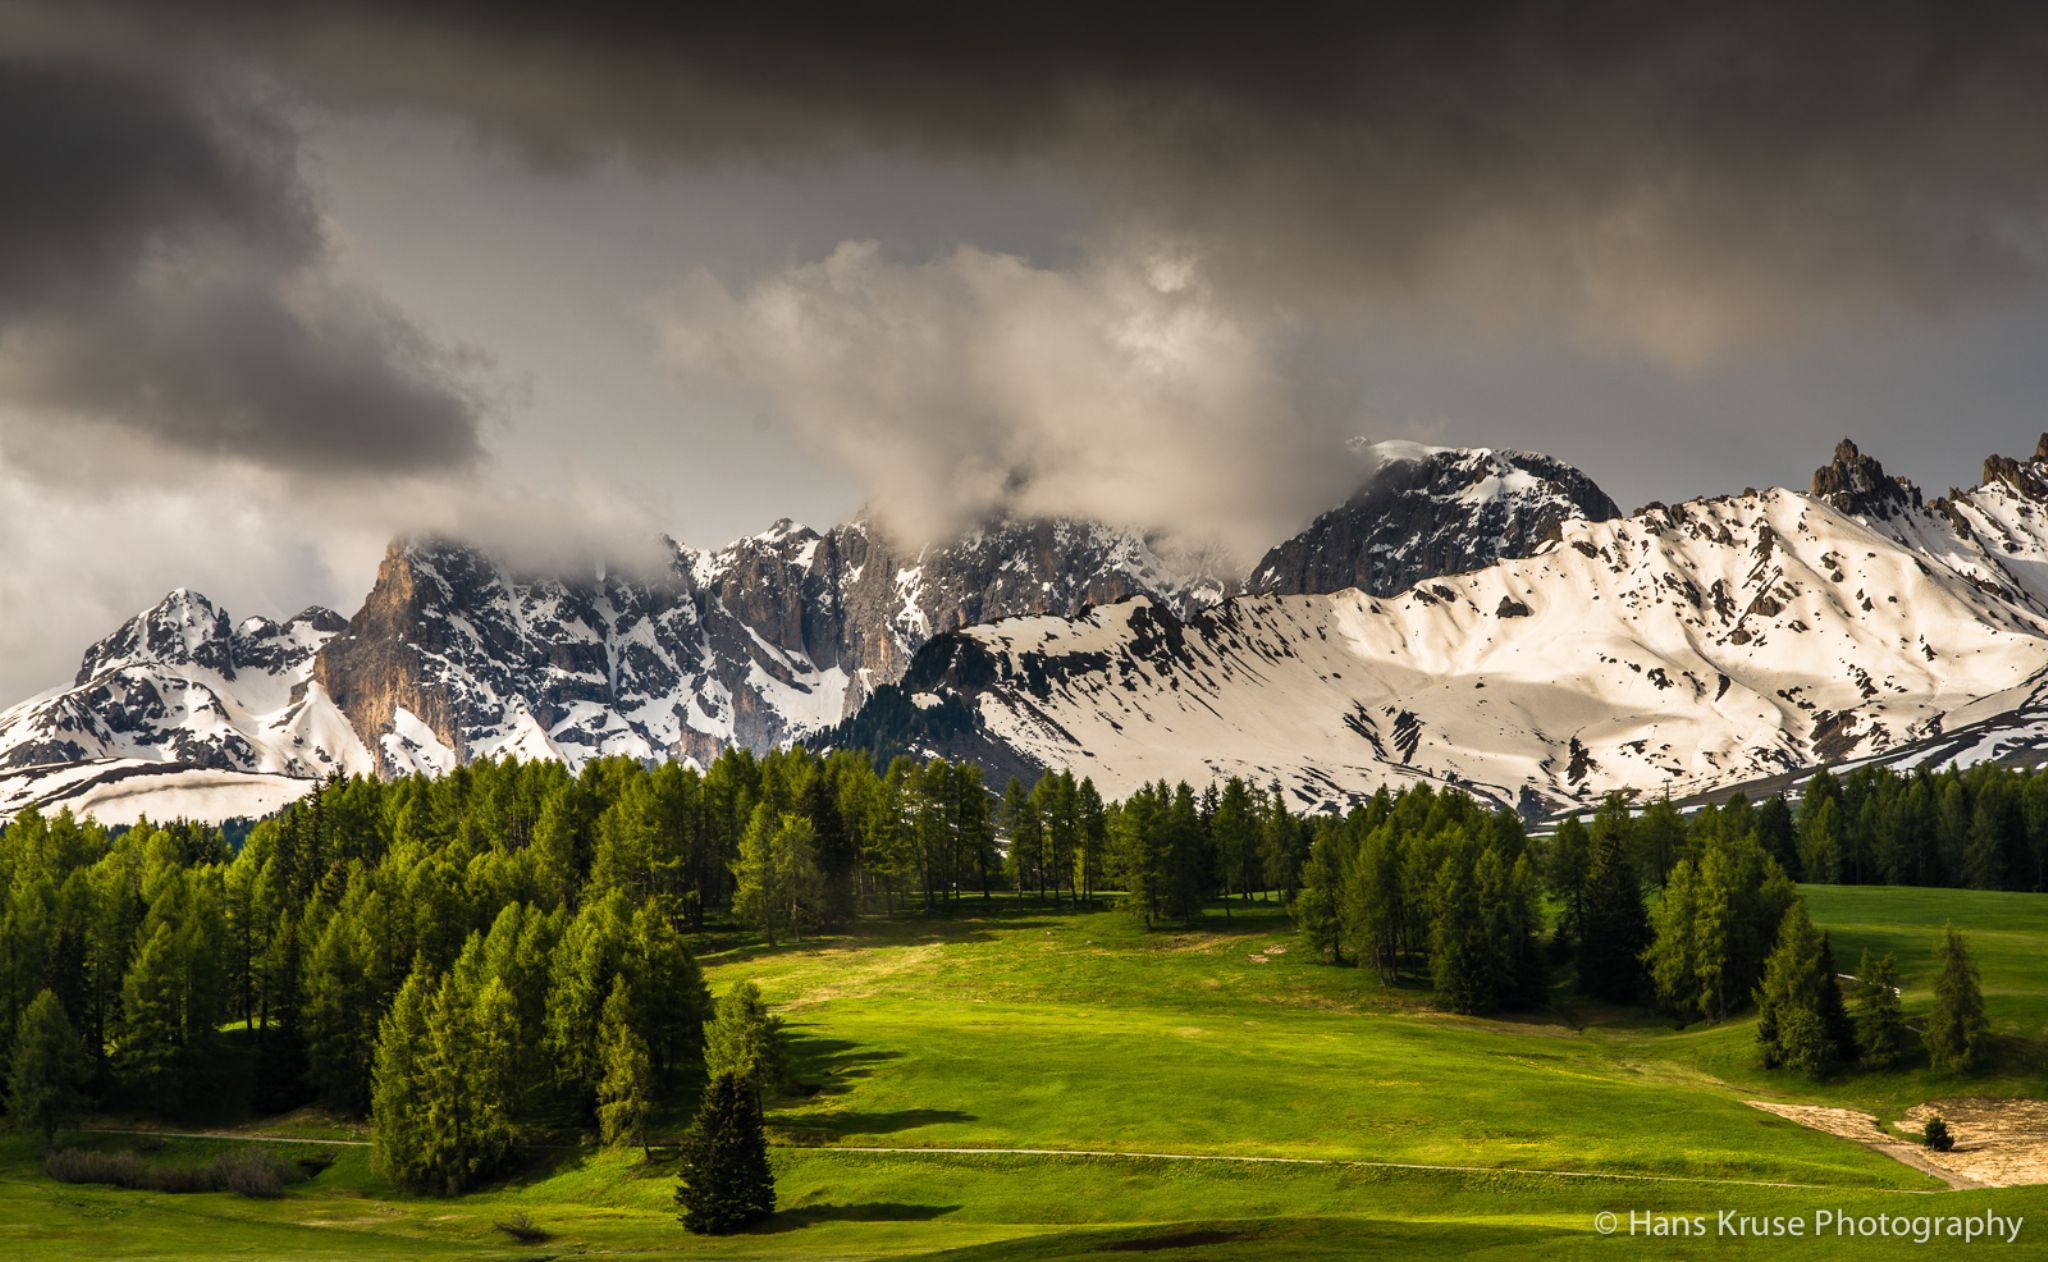 Greenery in the mountains by Hans Kruse